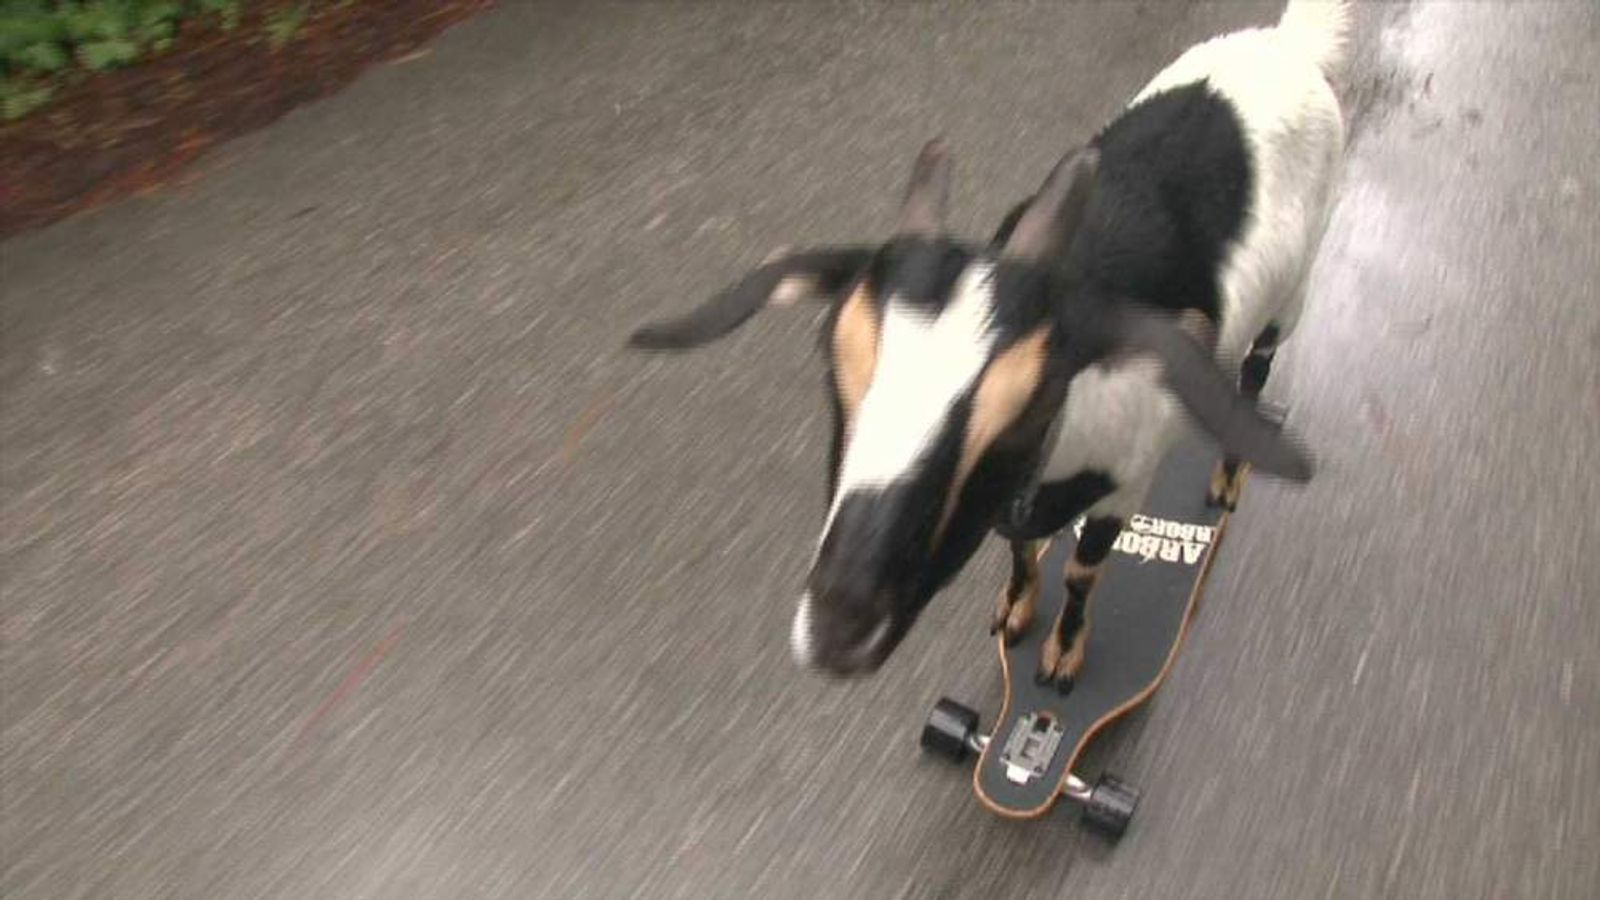 A goat on a skateboard